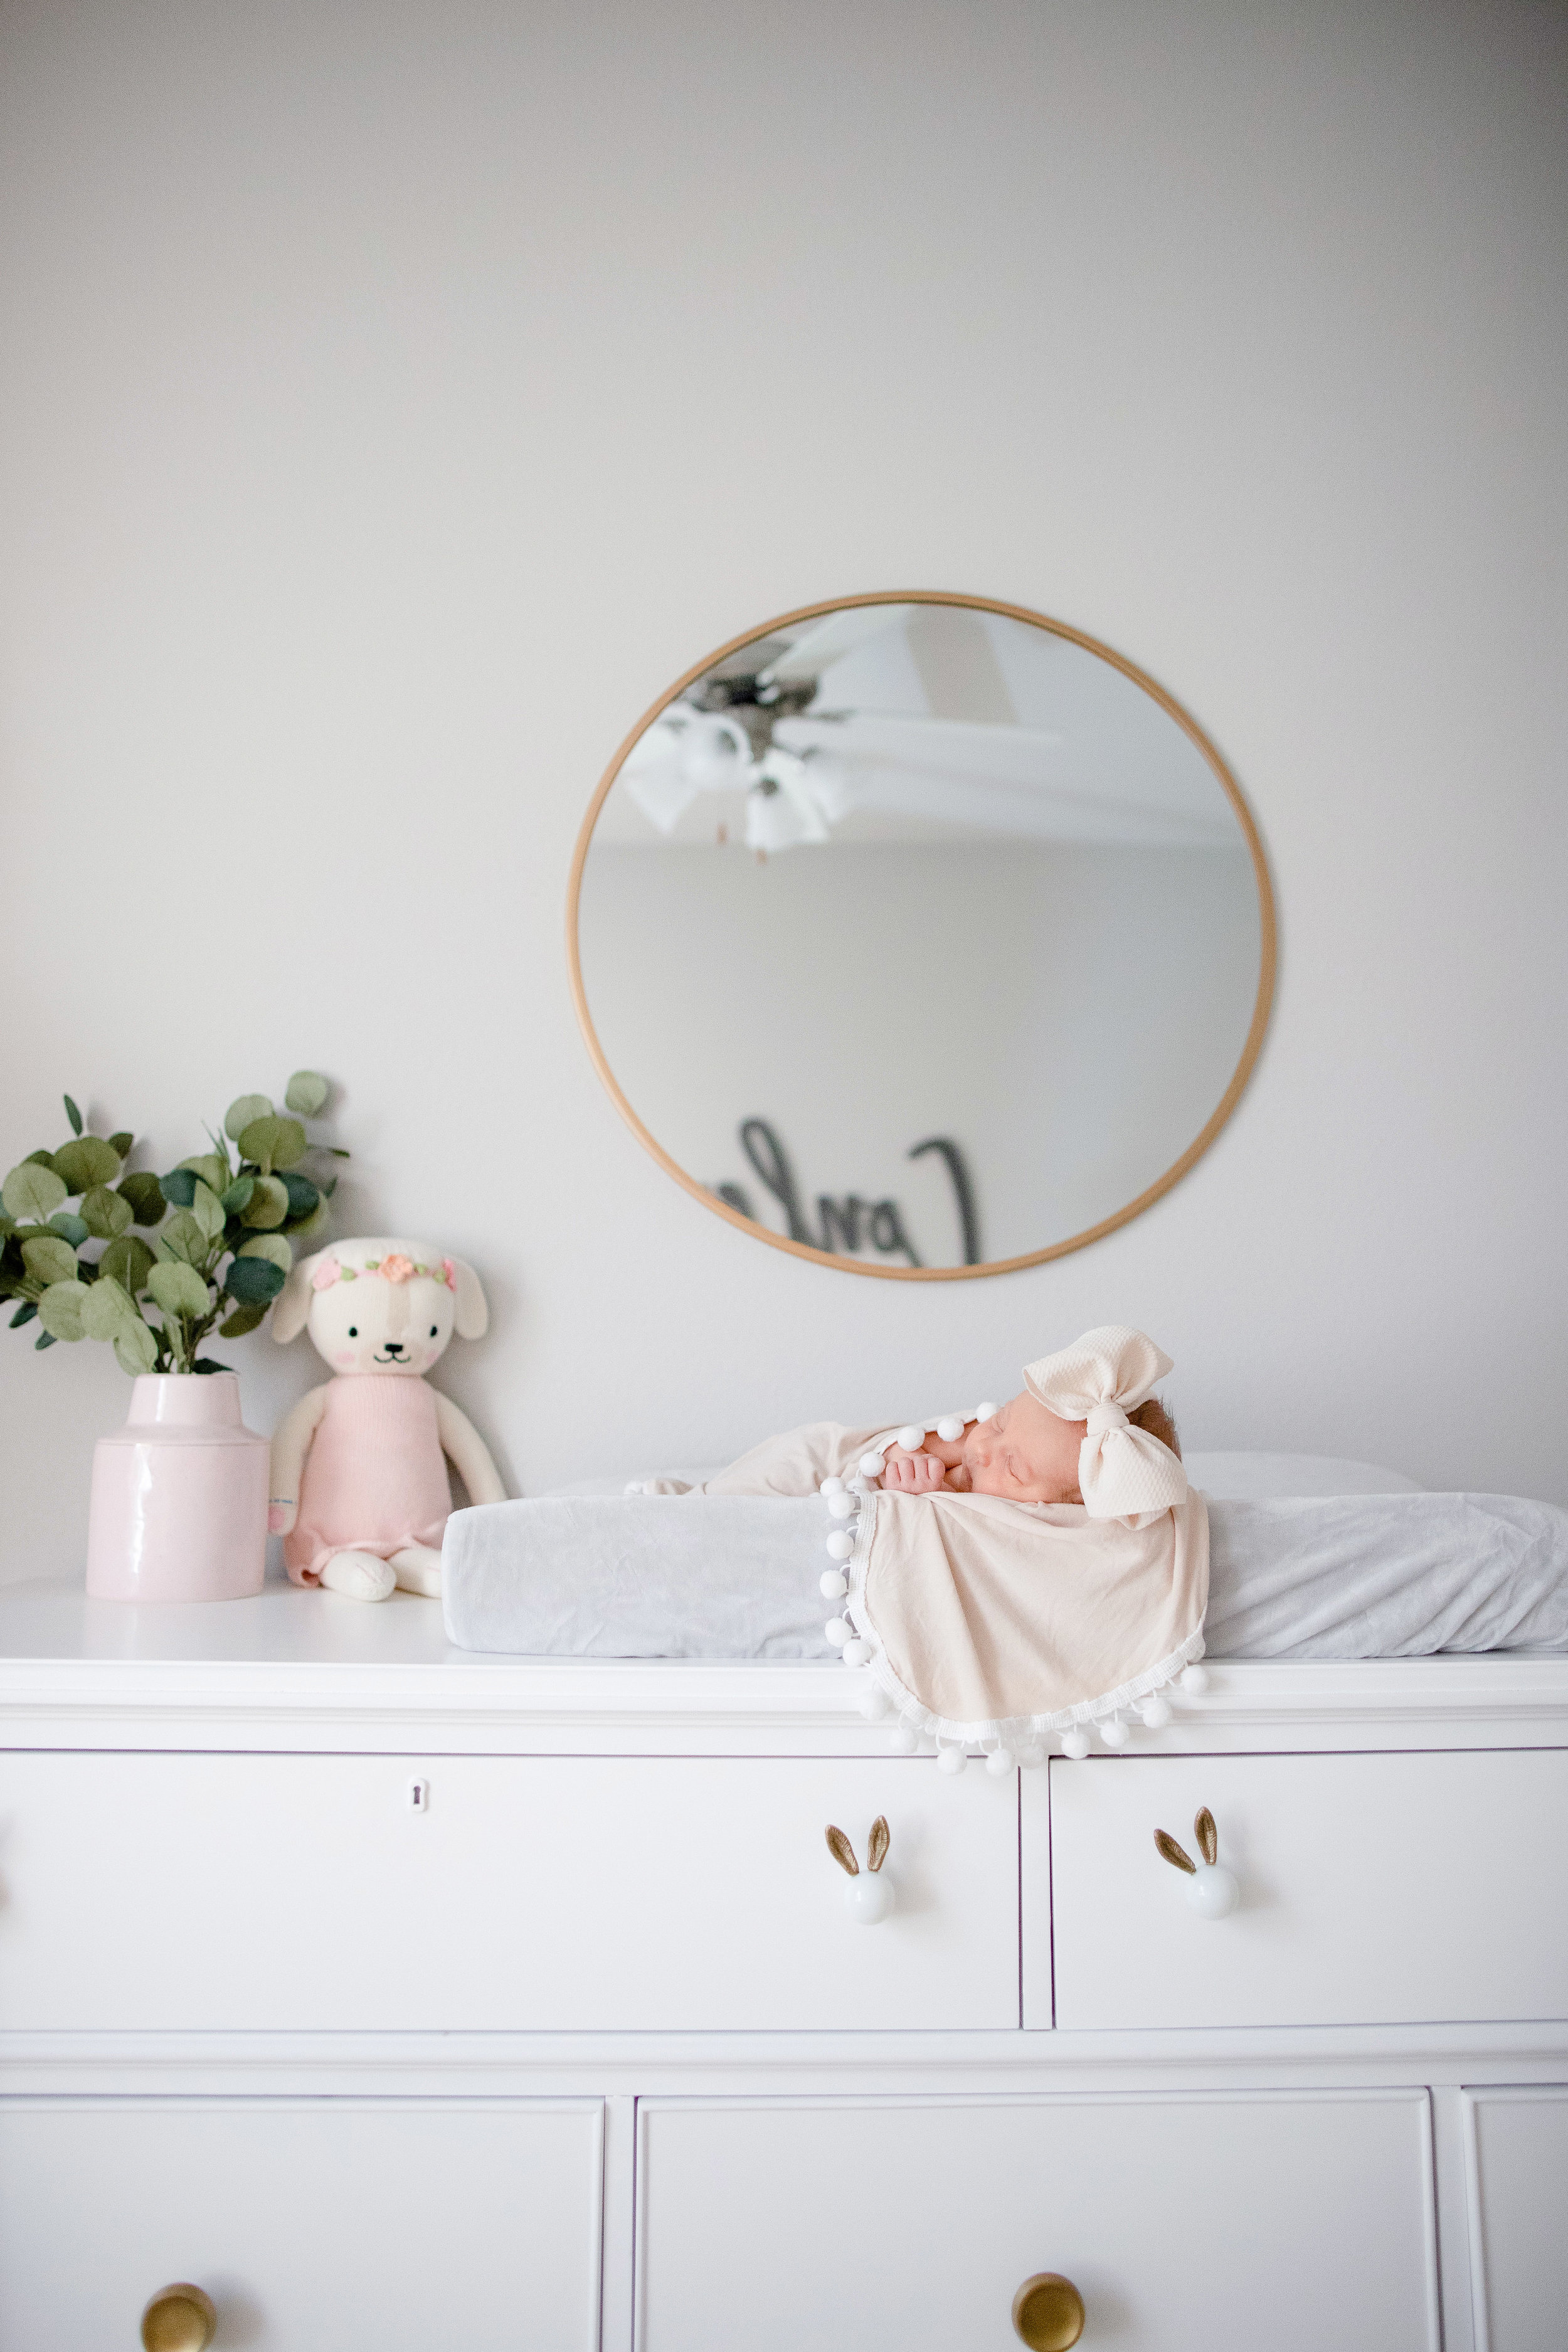 This dresser was mine from college. it was an antique cream distressed color that we had painted white and then added new hardware from Anthropologie.